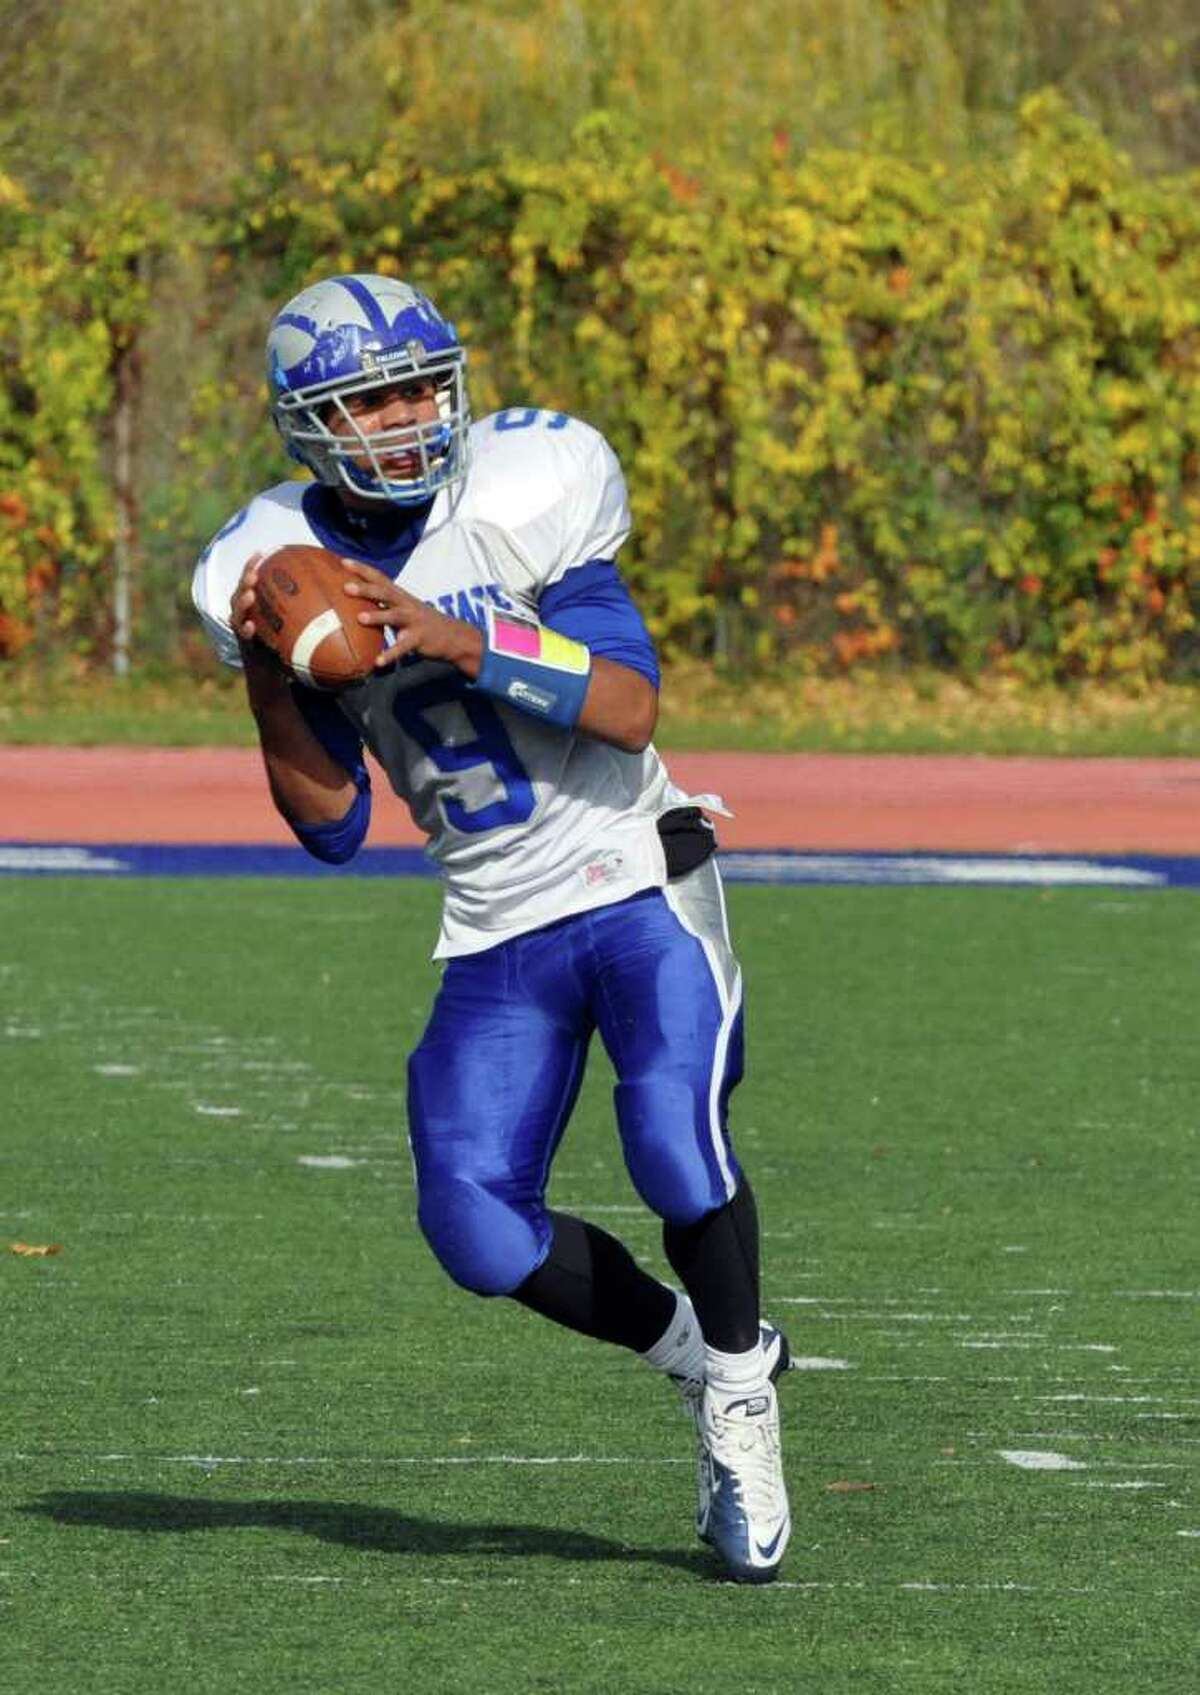 Fairfield Ludlowe's Tom Hammons looks to pass during the varstiy football game against Staples at Staples High in Westport on Saturday, Oct. 30, 2010.